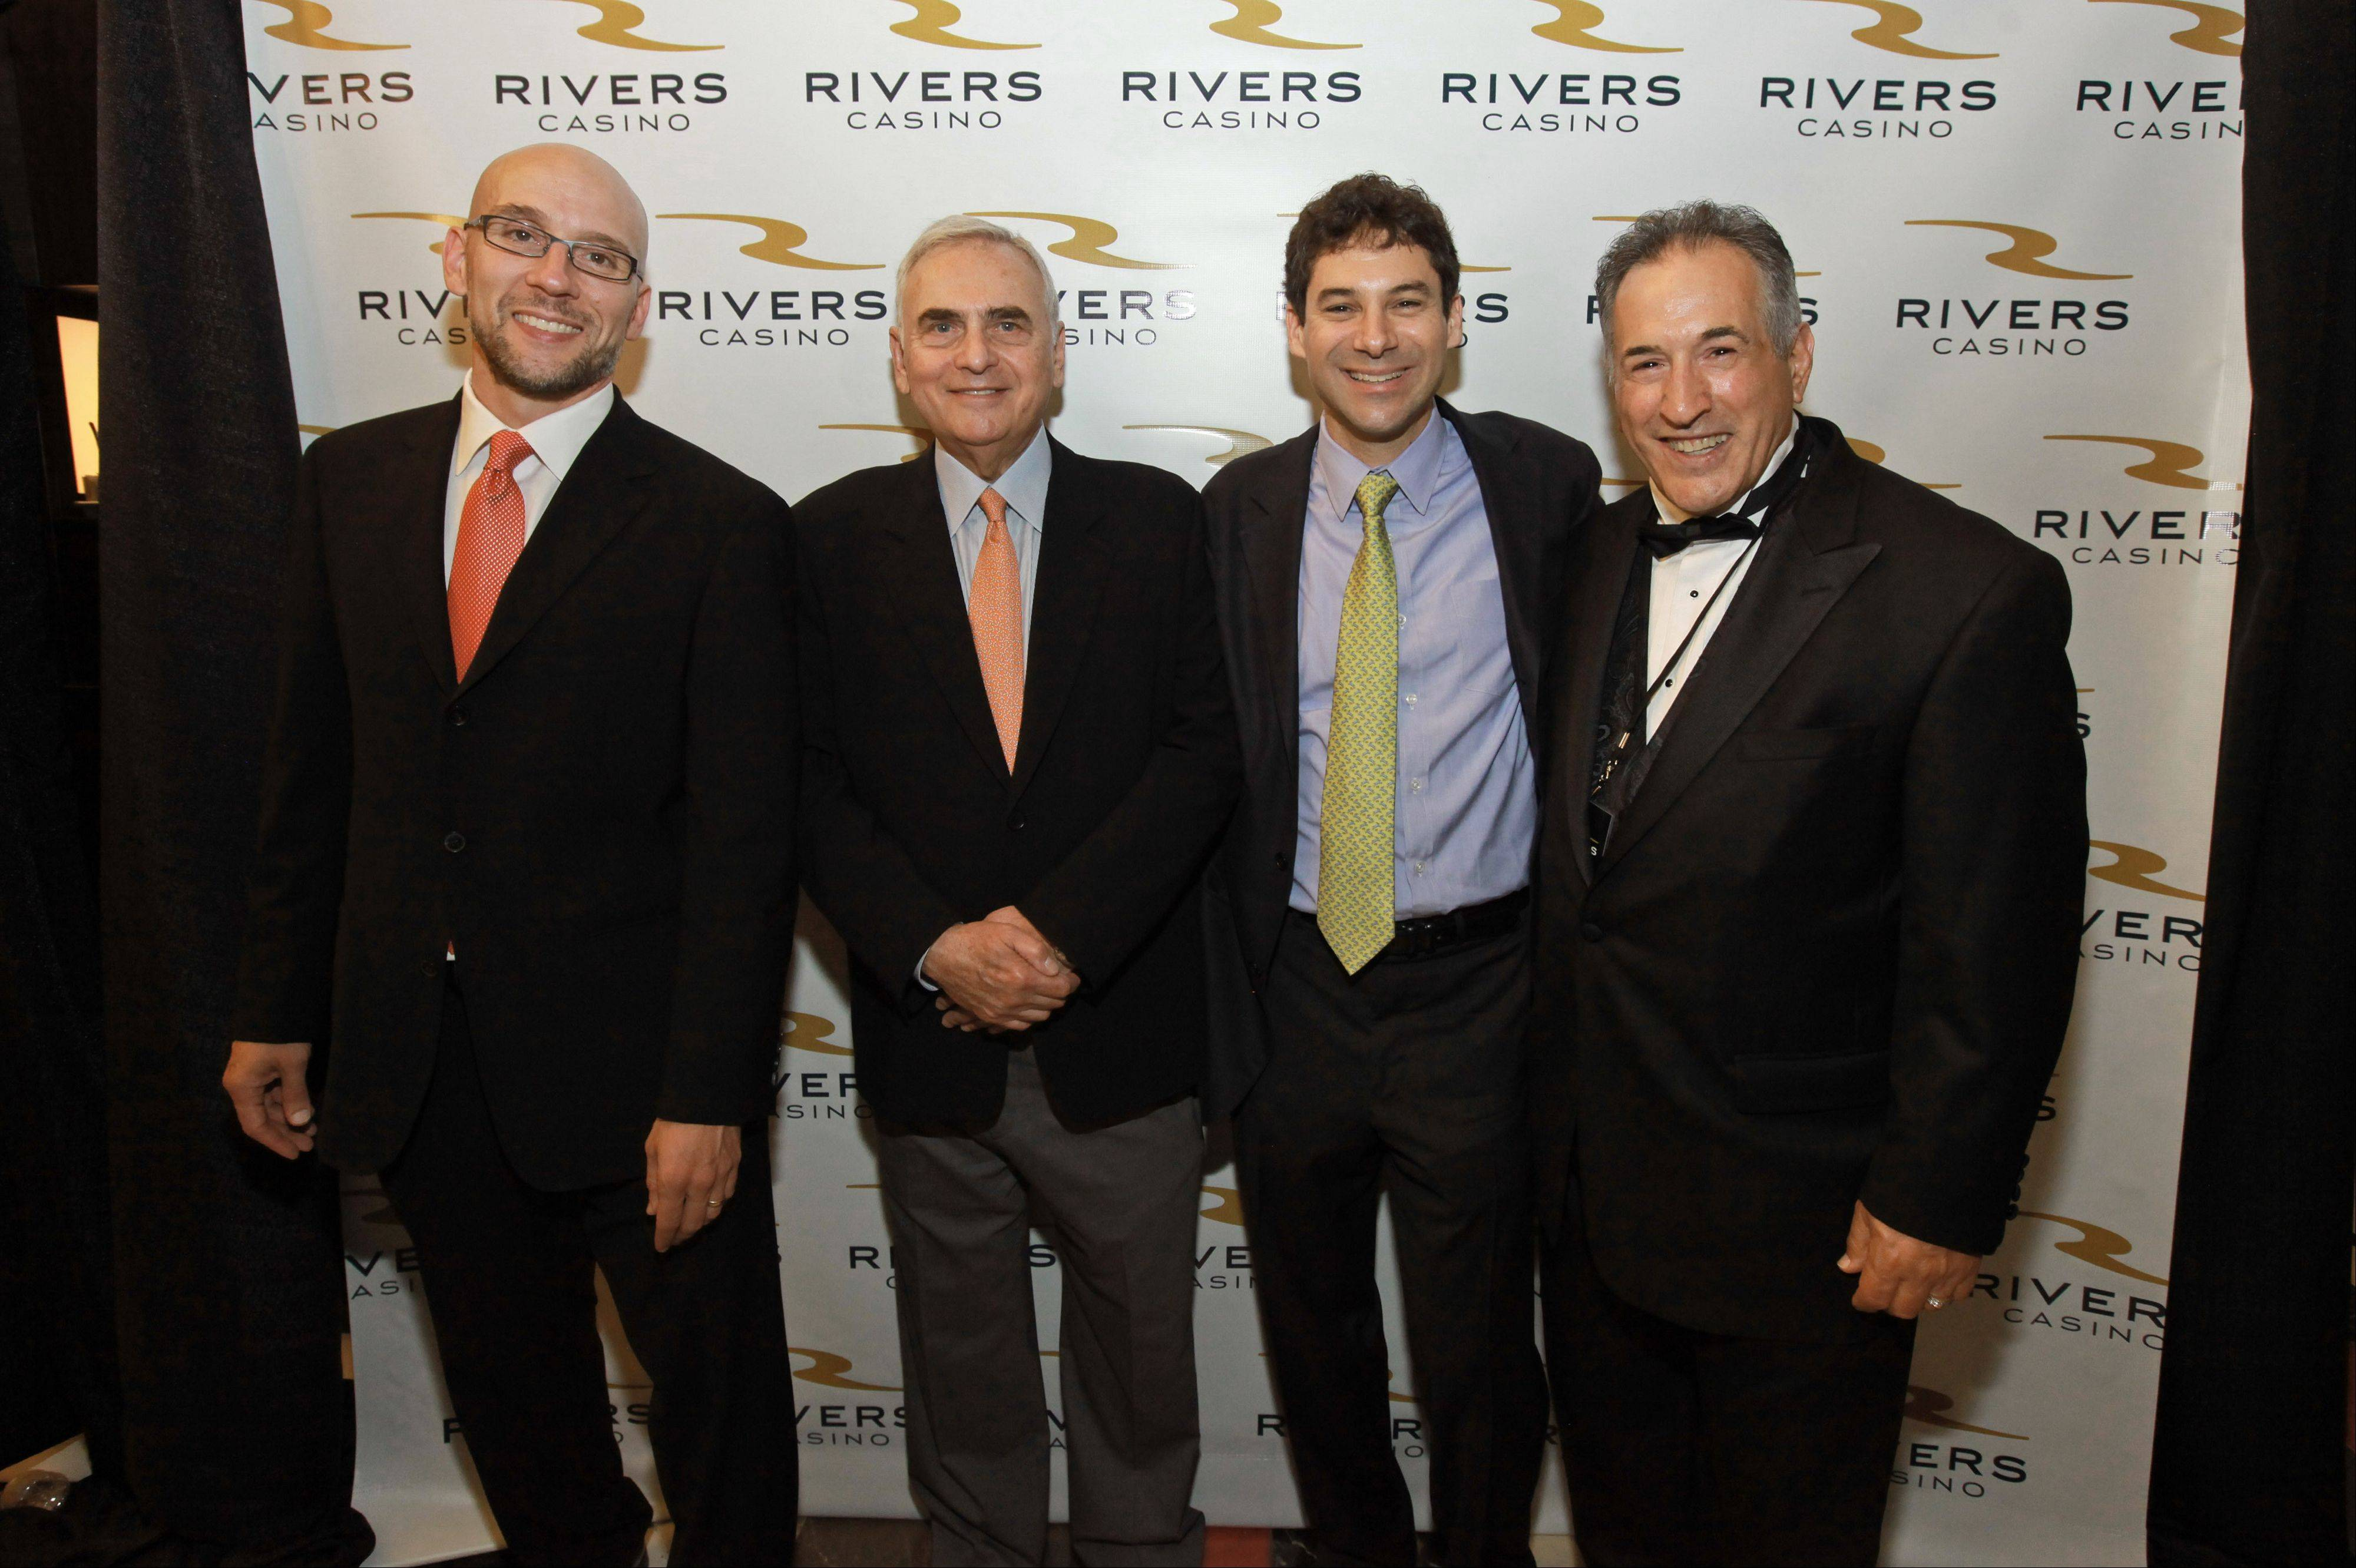 Neil Bluhm, second from left, chairman of Midwest Gaming & Entertainment, celebrates last week's opening of Rivers Casino with David Patent, far left, chief operating officer of Rush Street Gaming LLC; Greg Carlin, chief executive officer of Midwest Gaming & Entertainment; and Des Plaines Mayor Martin J. Moylan, right.